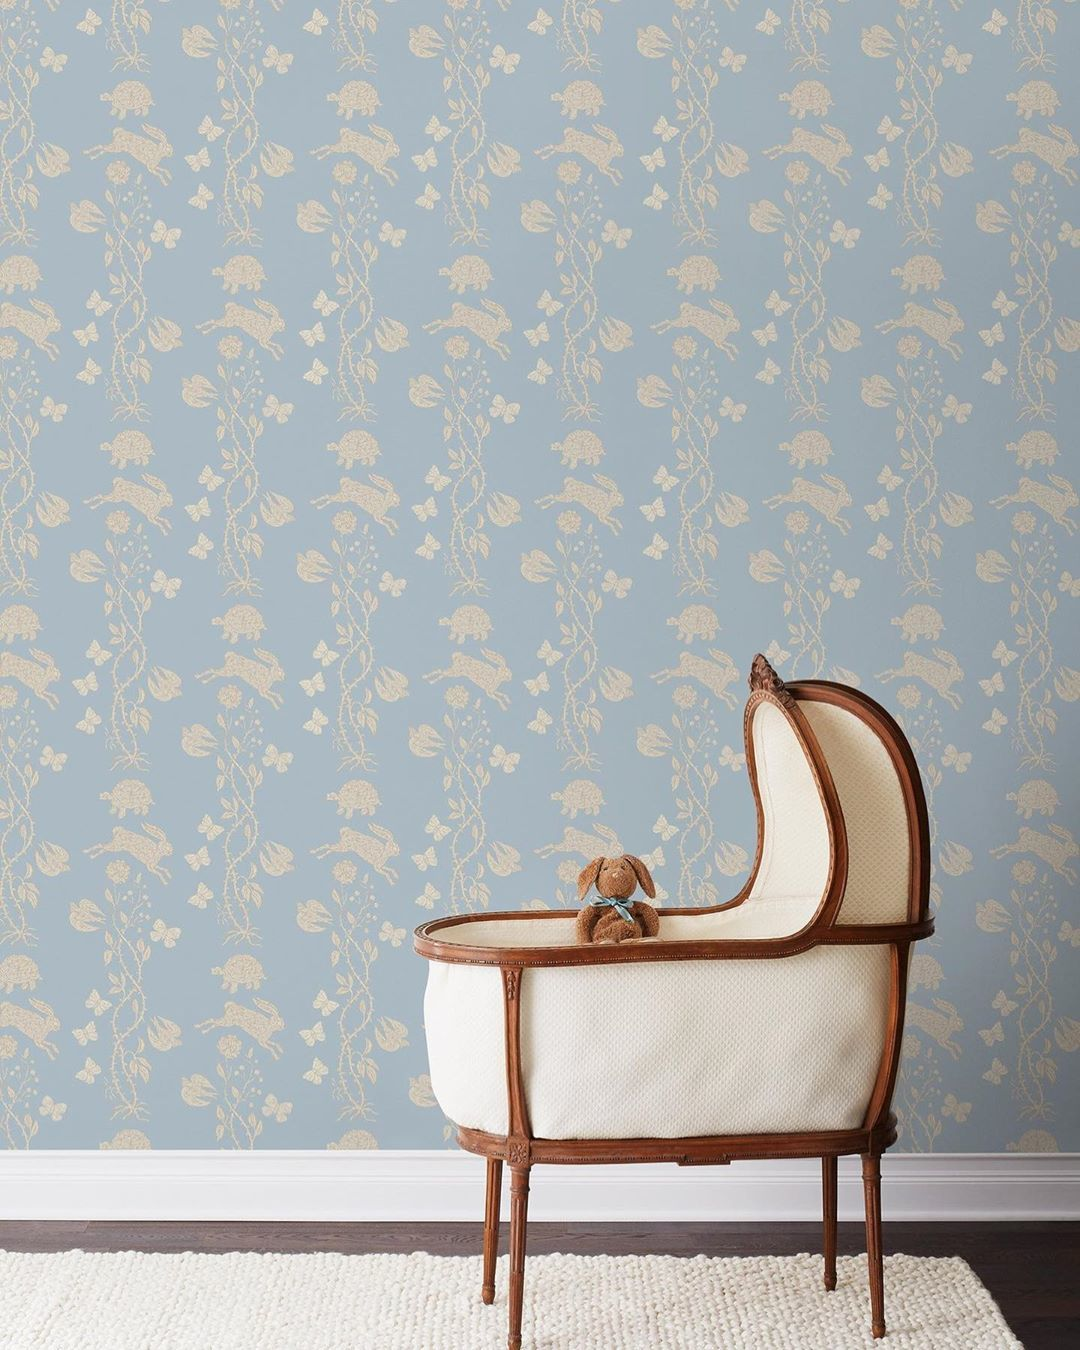 Fable Mist wallpaper | PATCH NYC | Hygge & West